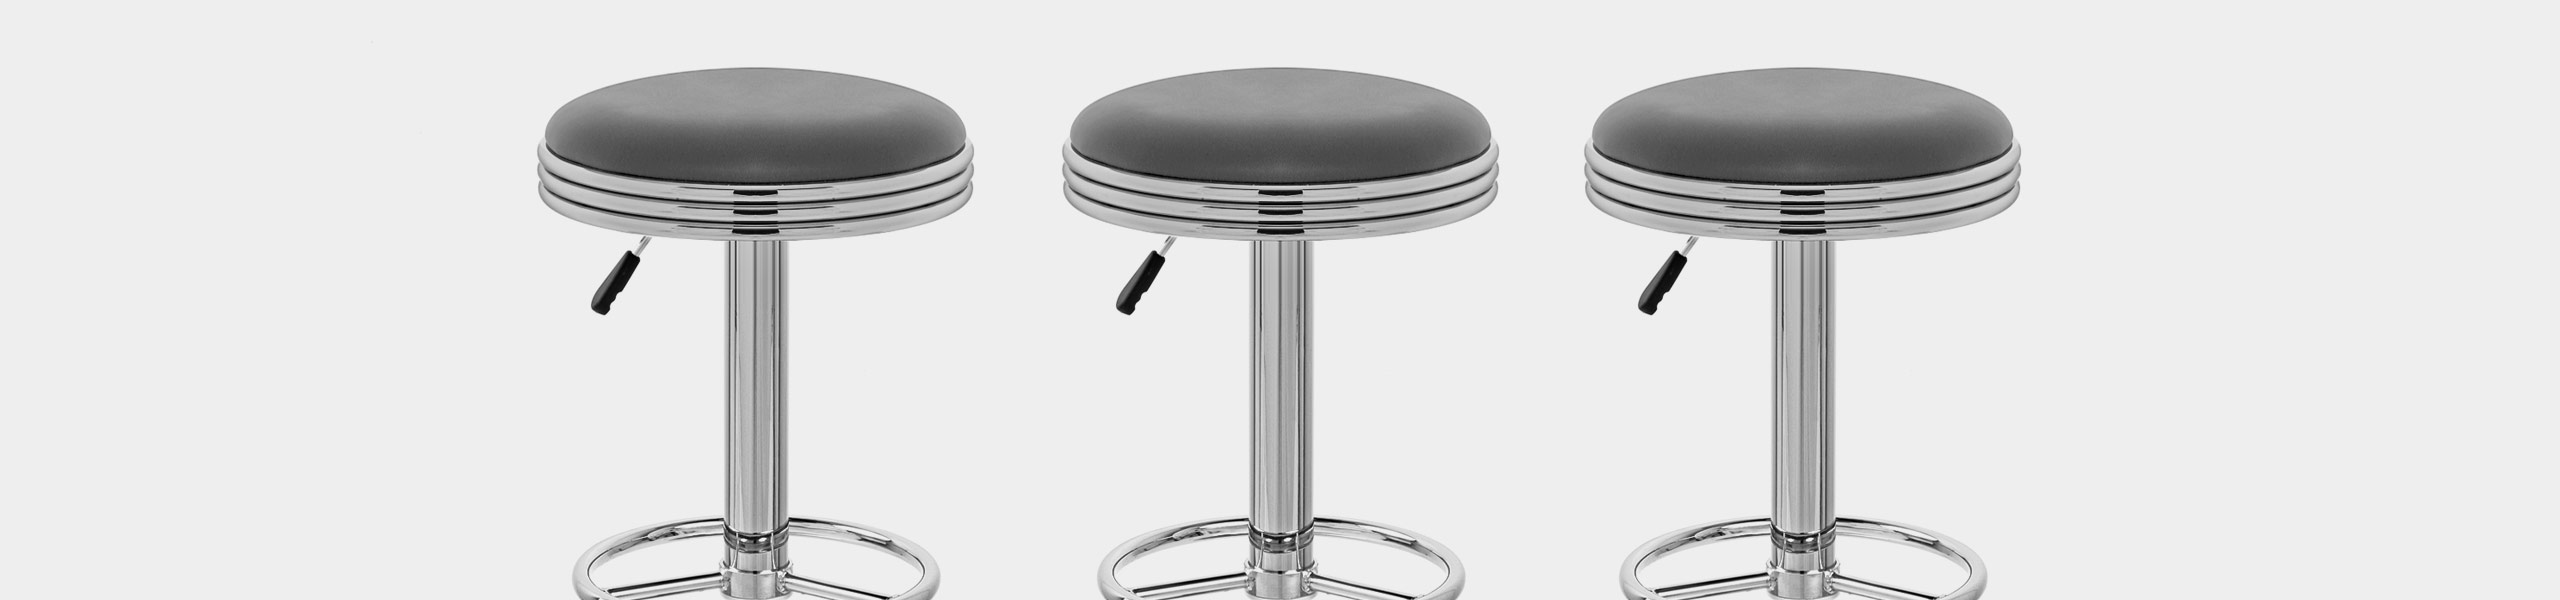 Java Bar Stool Grey Video Banner